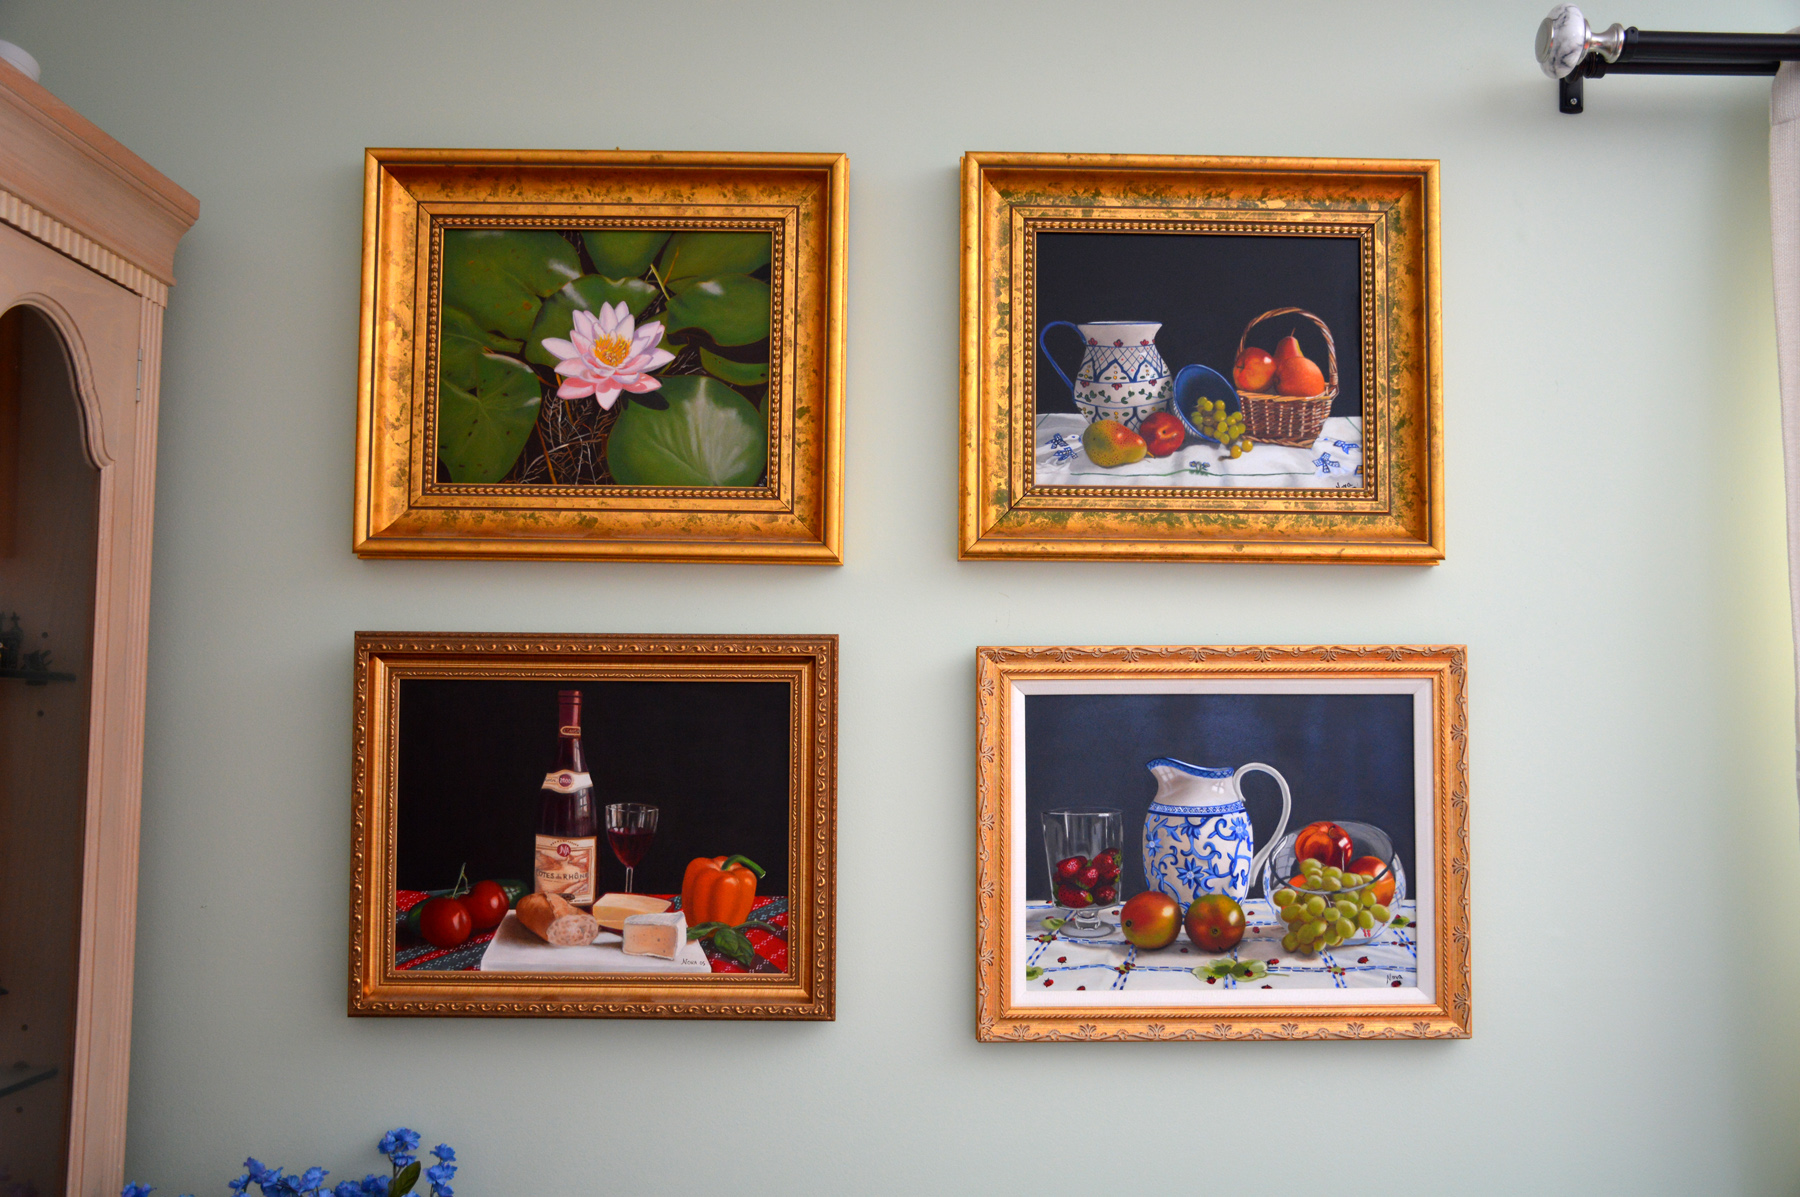 Nora Invitation 05-30-2021-Paintings on the wall-4